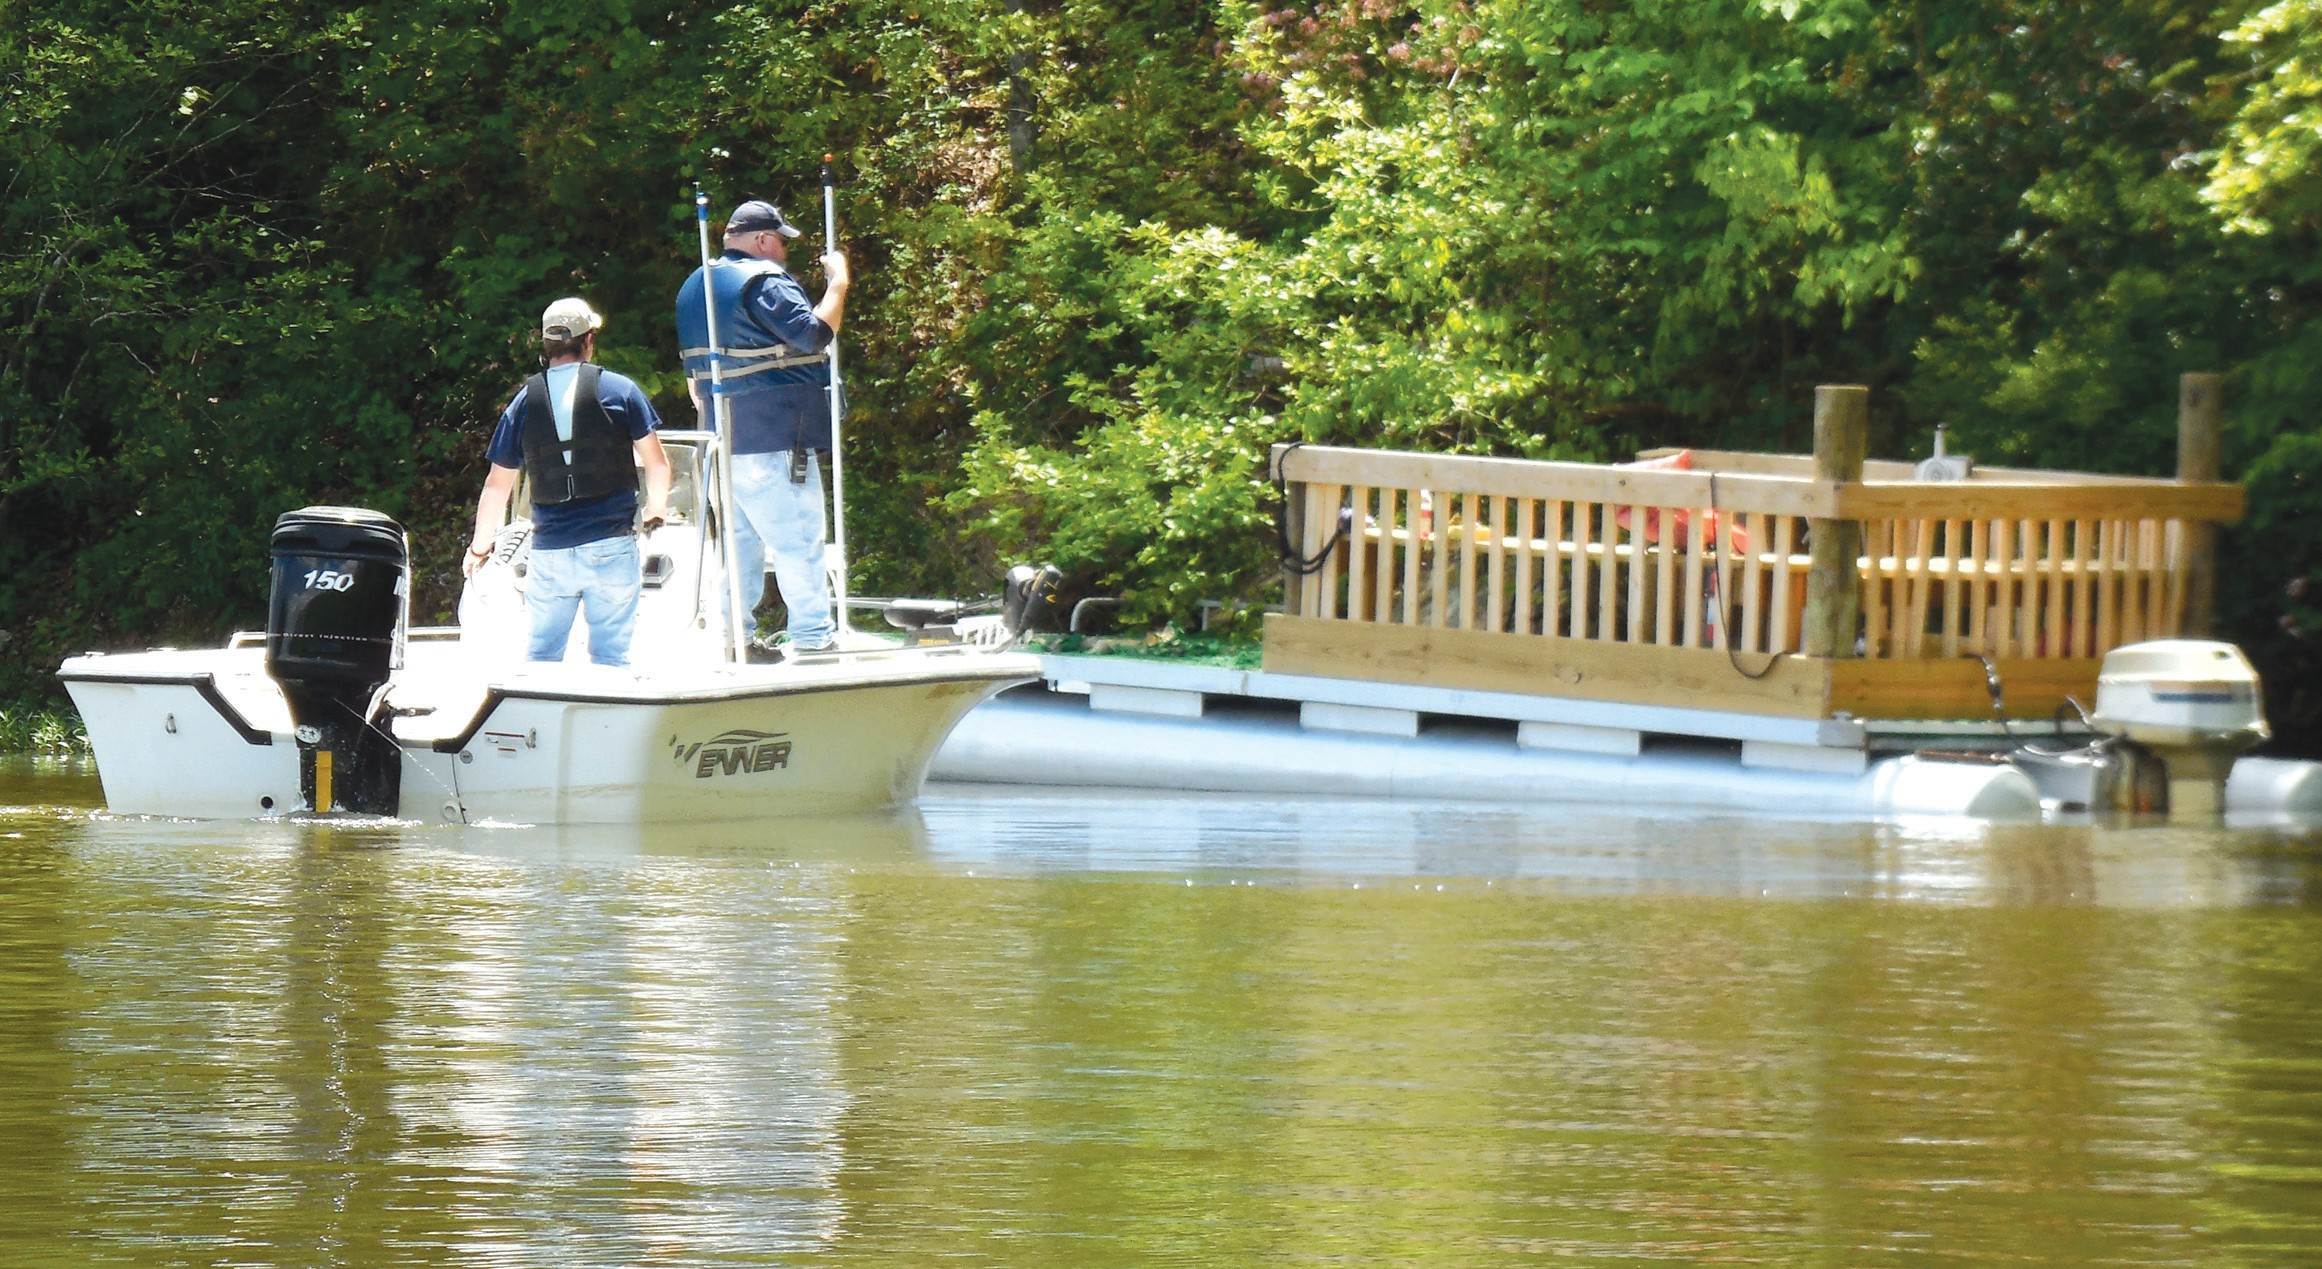 Straight Mountain Volunteer Fire Chief Charles Tipton surveys the boat the teenager was on when he fell into the water.